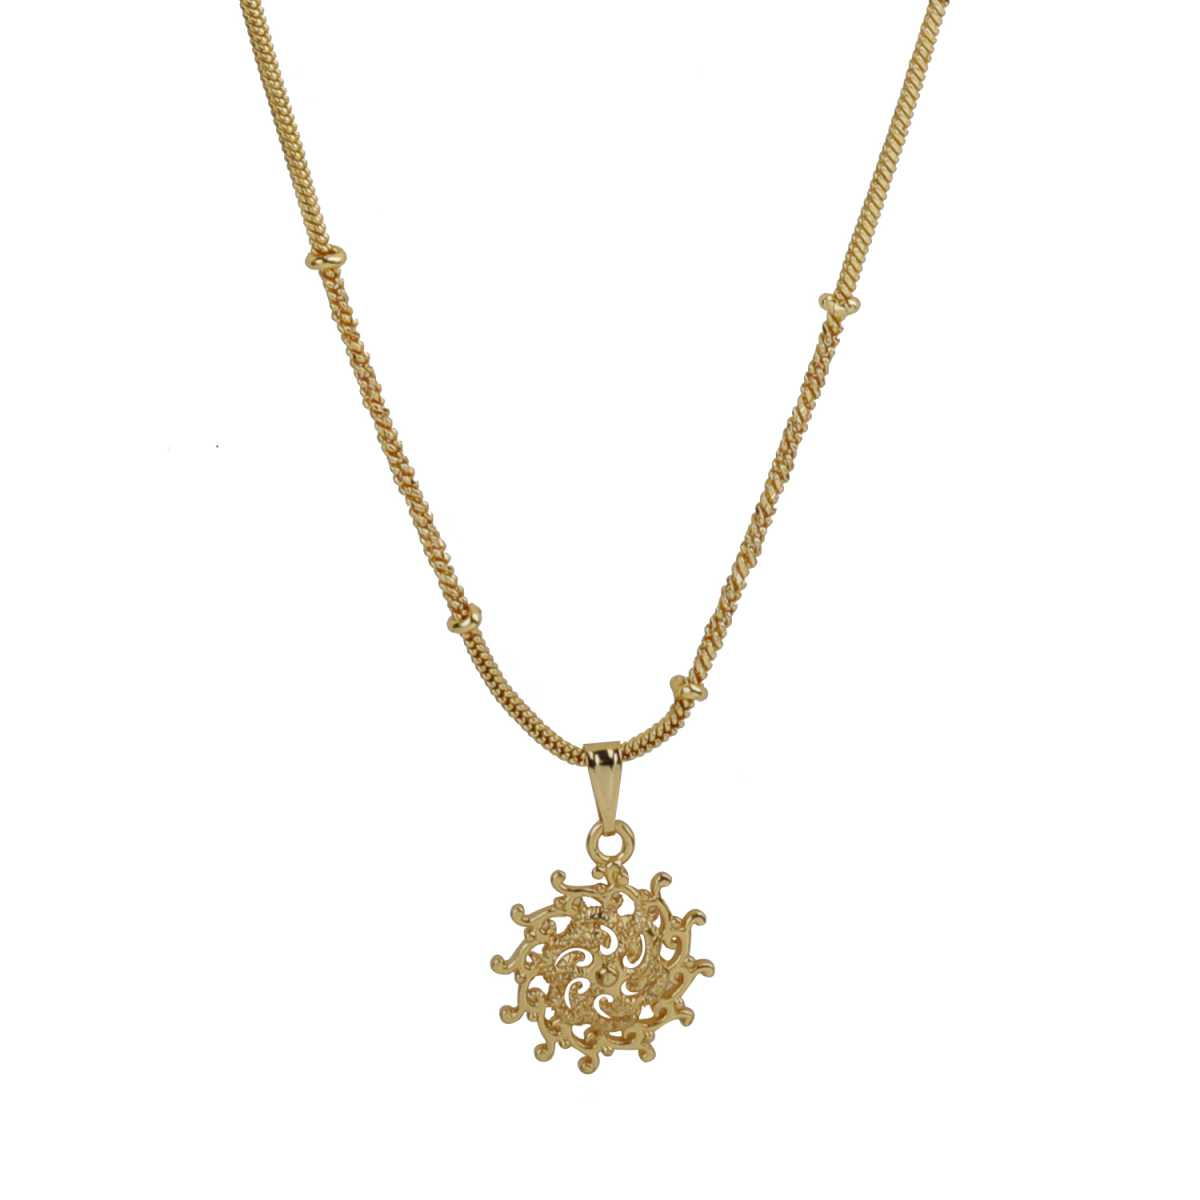 Eye-Catching Gold Sun Pendent Neckless Of 11.5 Inch Chain Pretty Look For Girls And Women Jewellery